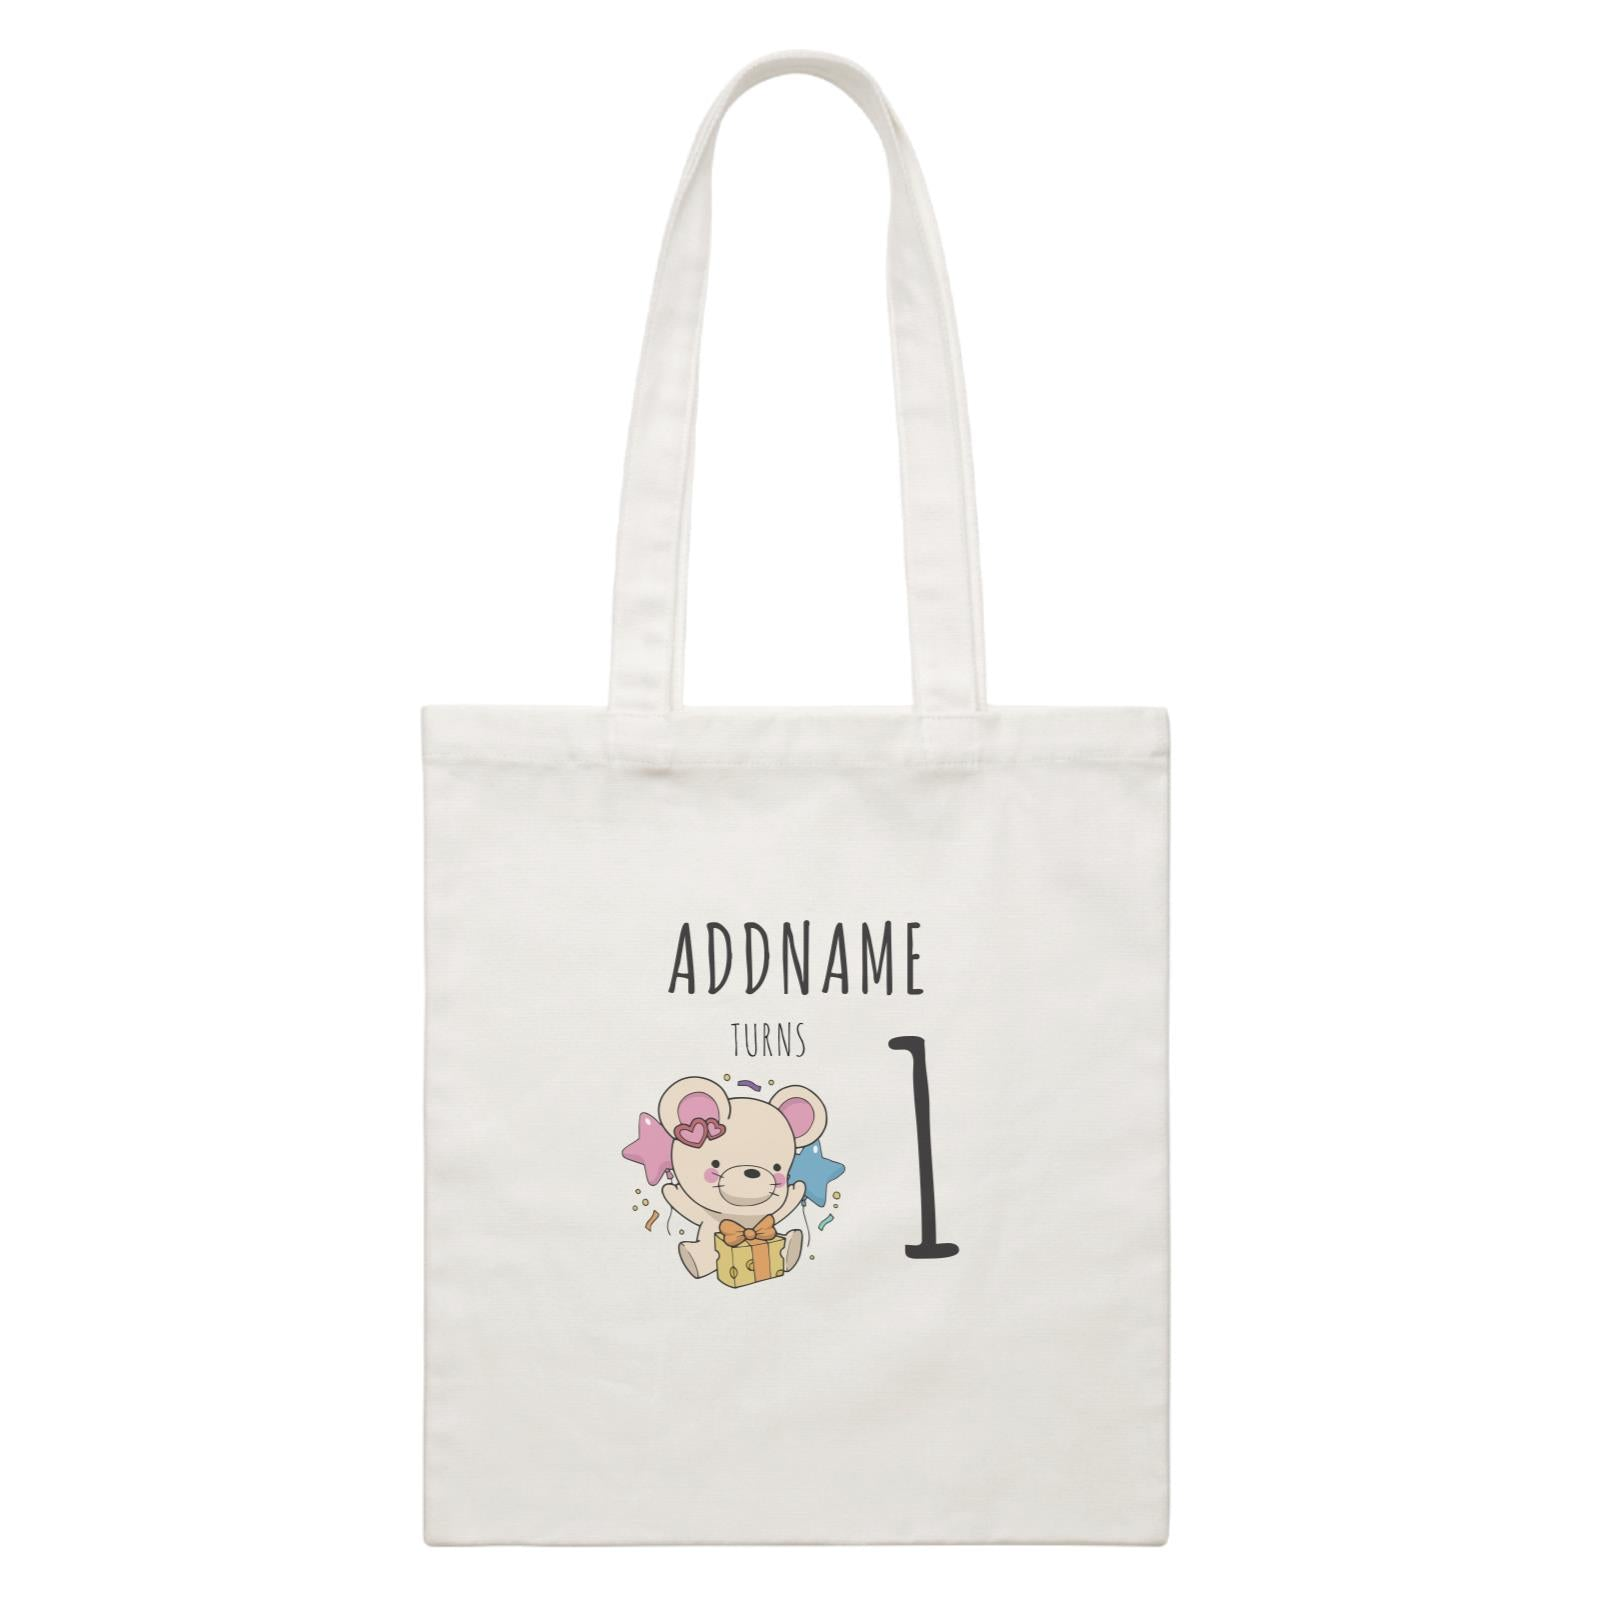 Birthday Sketch Animals Mouse with Cheese Present Addname Turns 1 White Canvas Bag